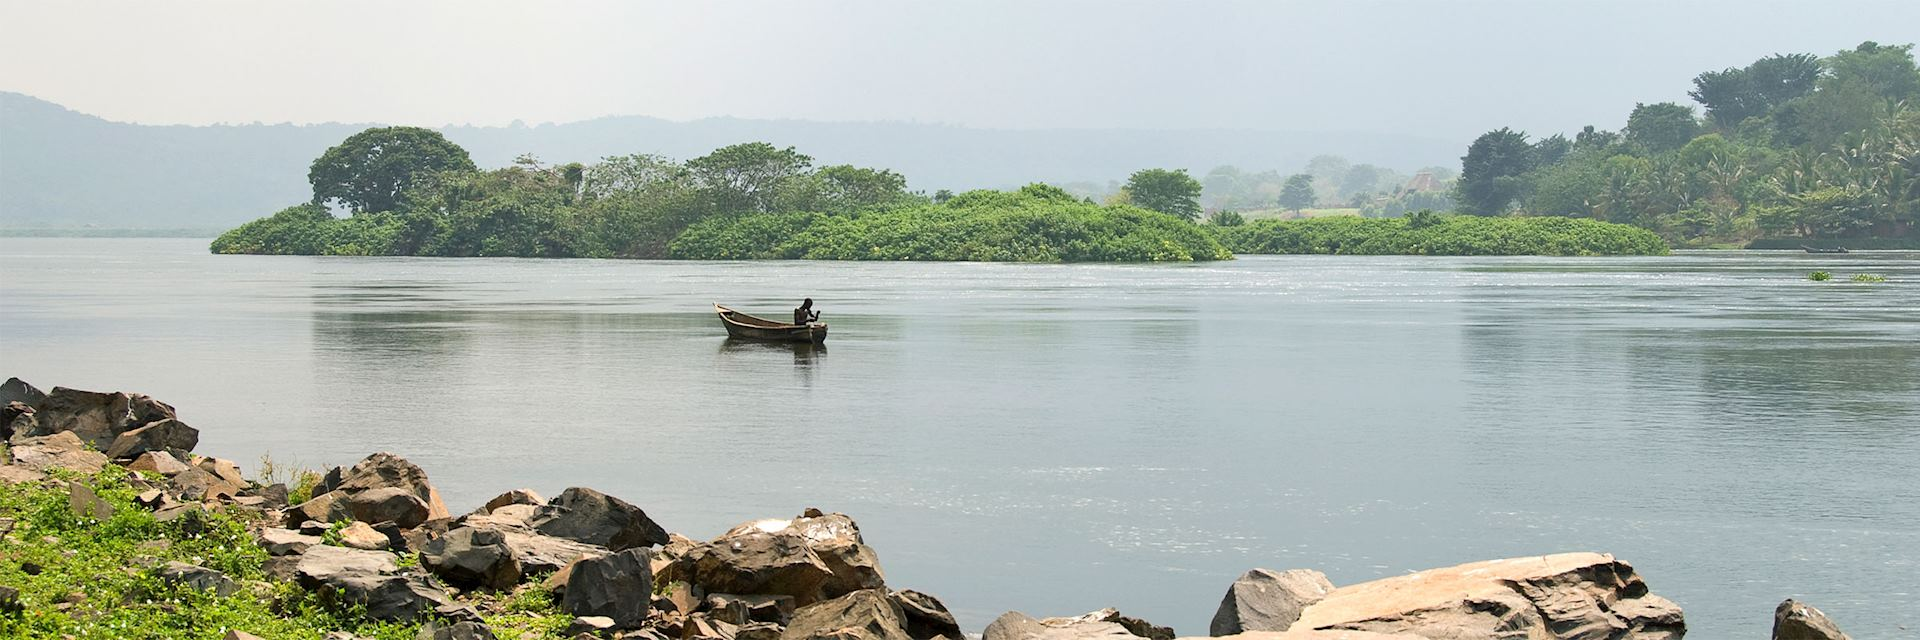 Fishing on a lake near Jinja